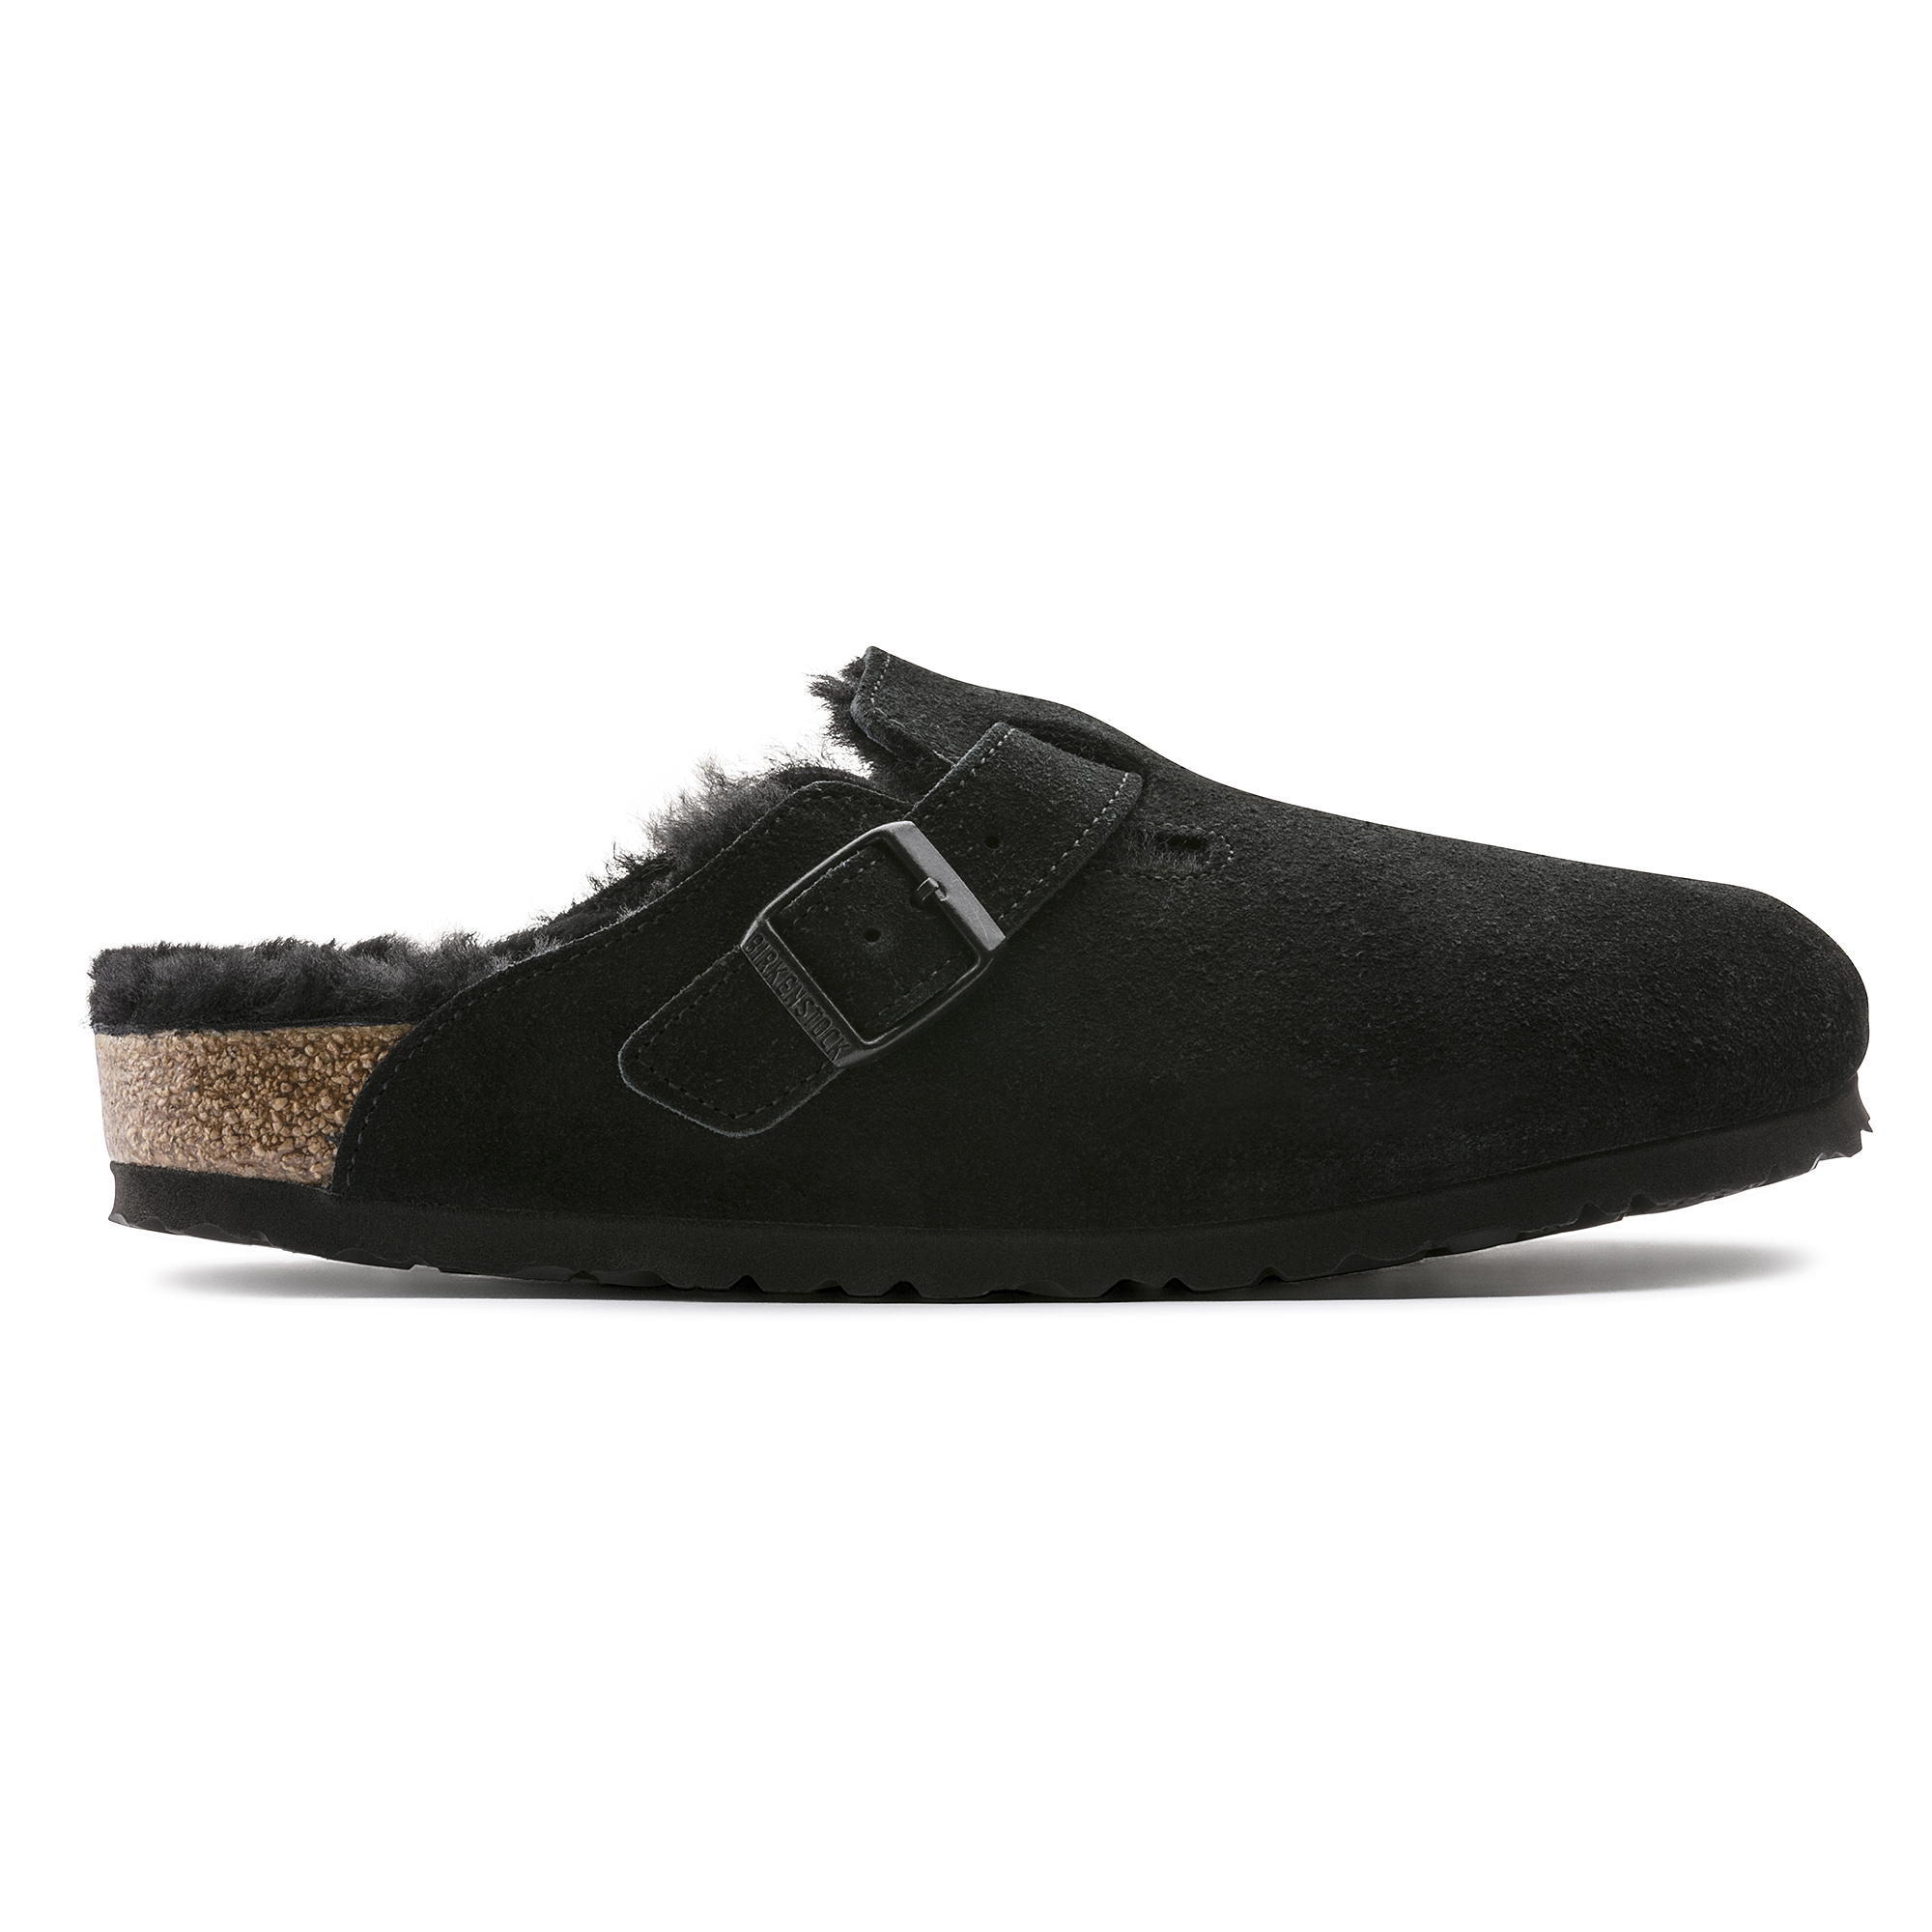 37feeca9f9a3 Boston Suede Leather Black · Boston Suede Leather Black ...